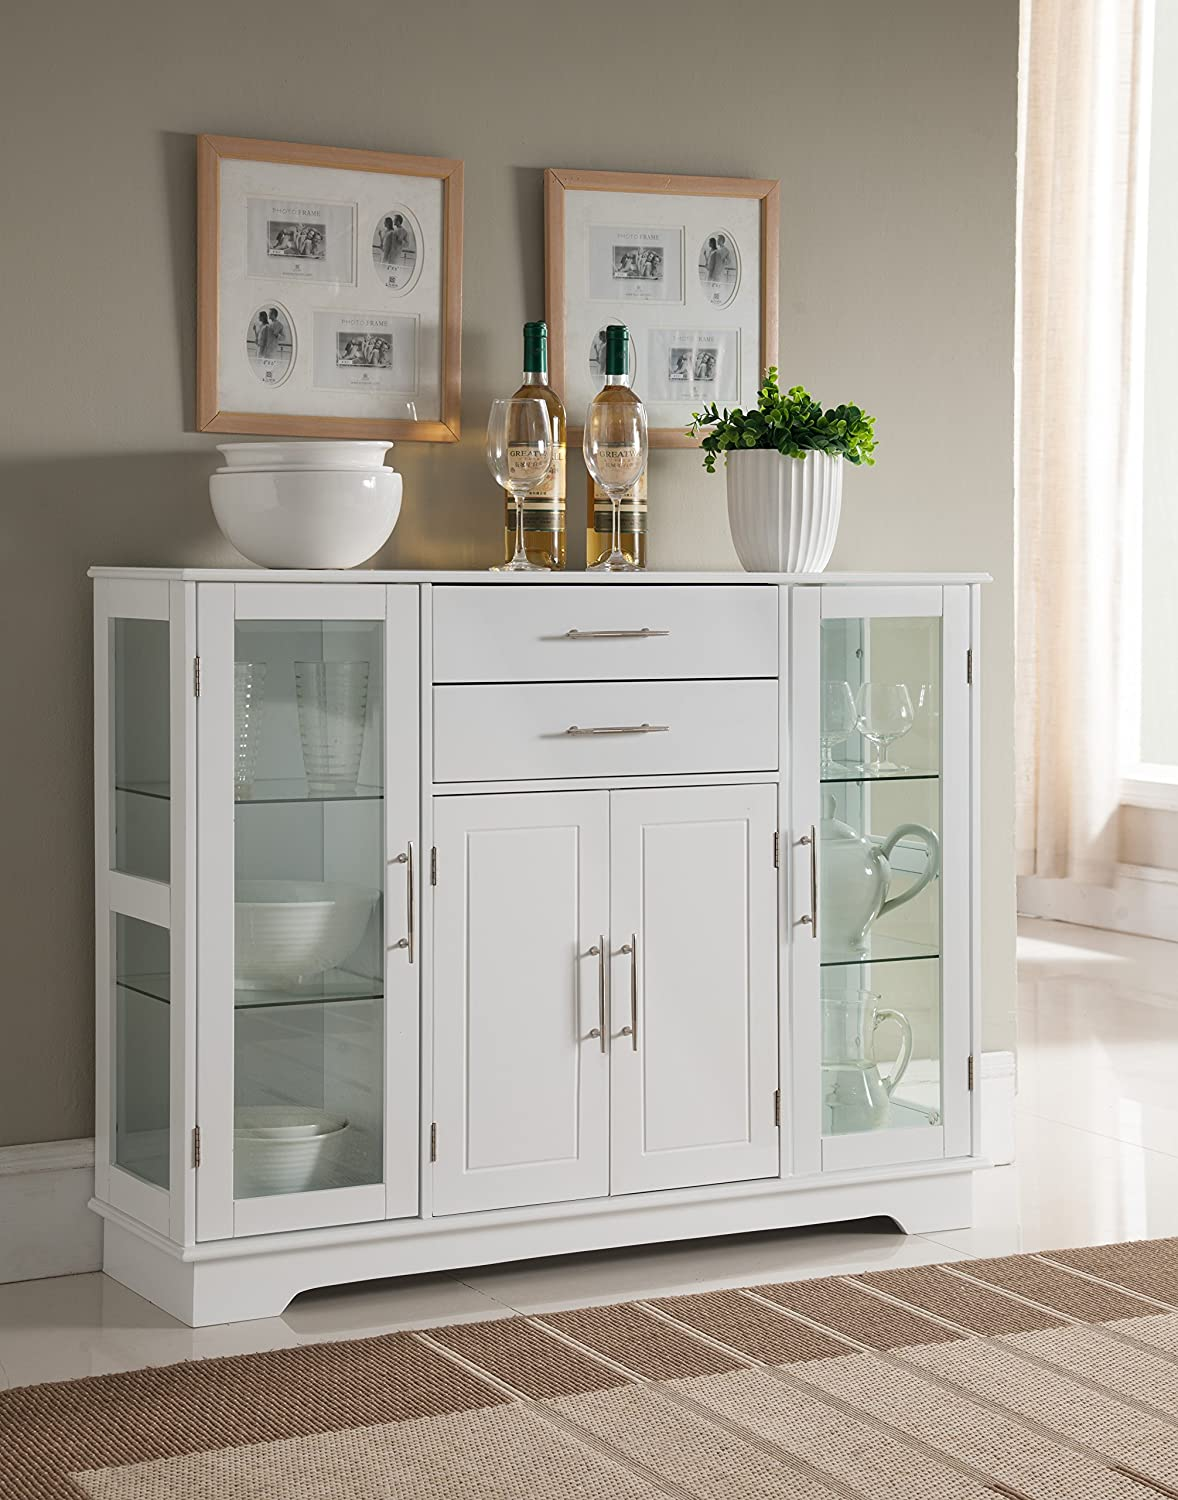 Amazon kings brand kitchen storage cabinet buffet with glass amazon kings brand kitchen storage cabinet buffet with glass doors white buffets sideboards planetlyrics